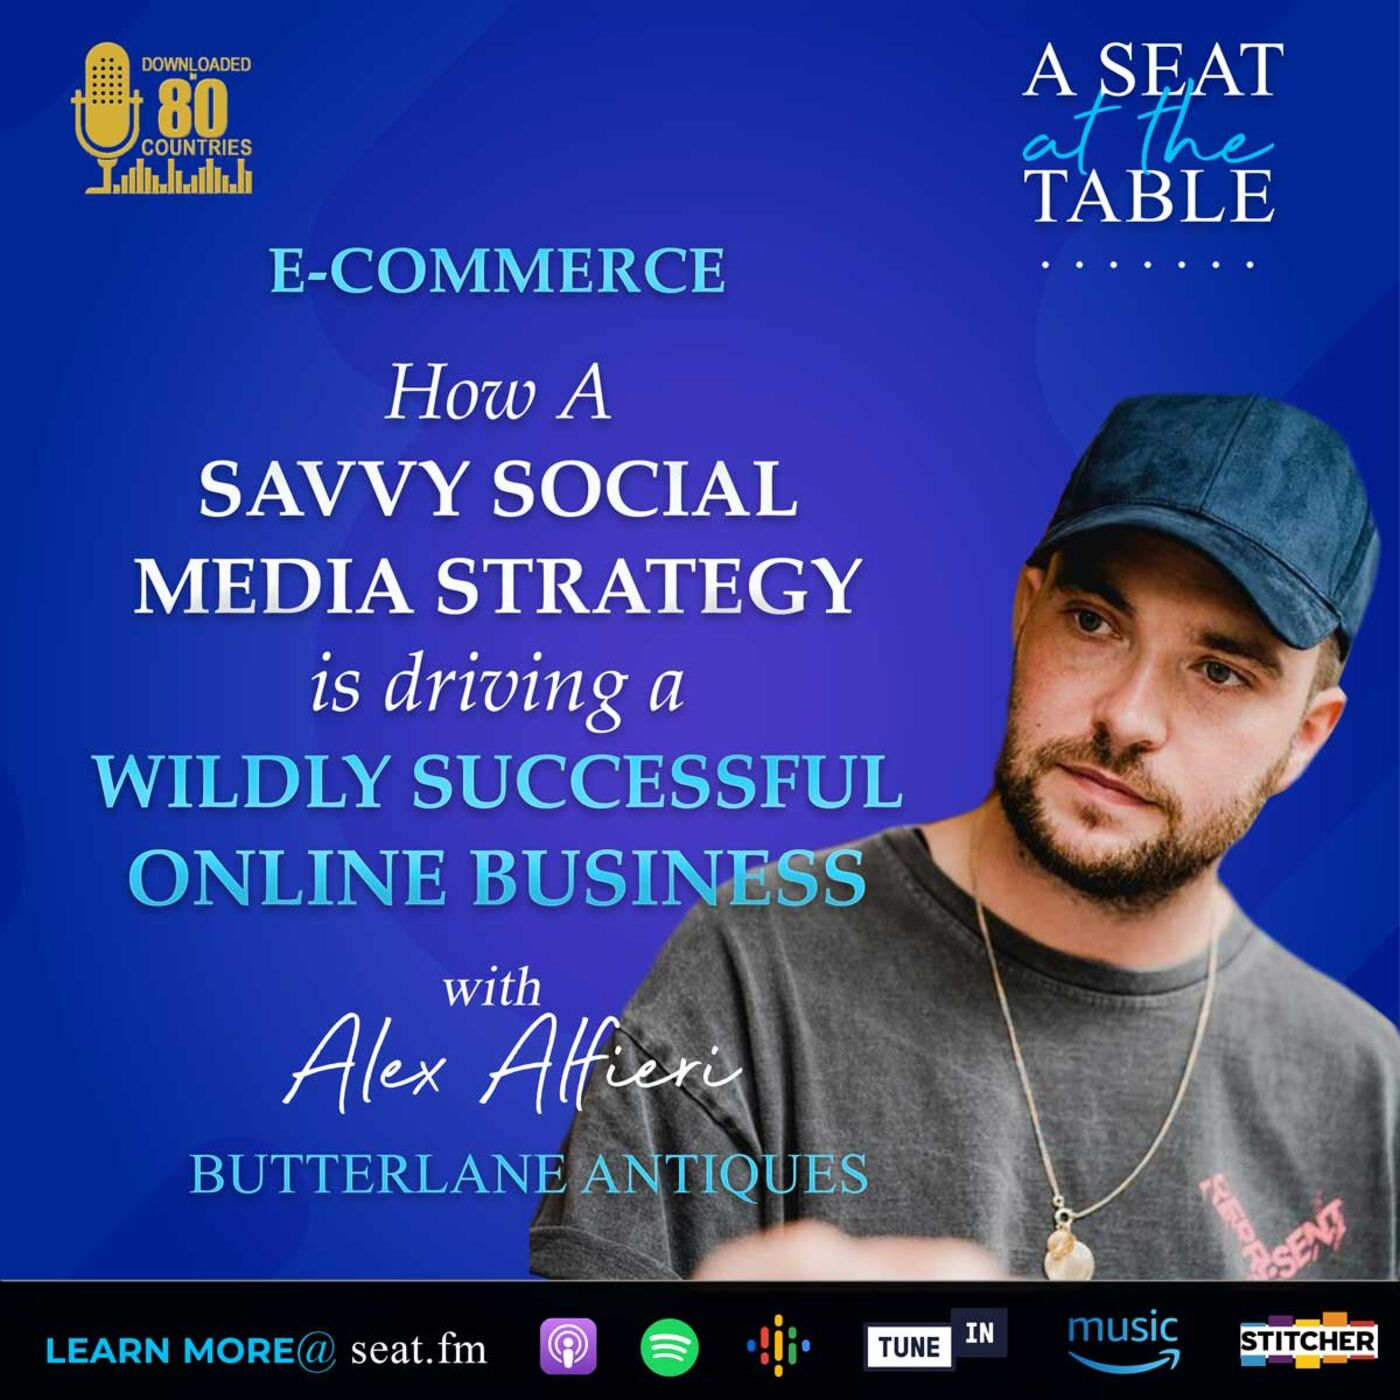 How A Savvy Social Media Strategy is Driving this Wildly Successful Online Business